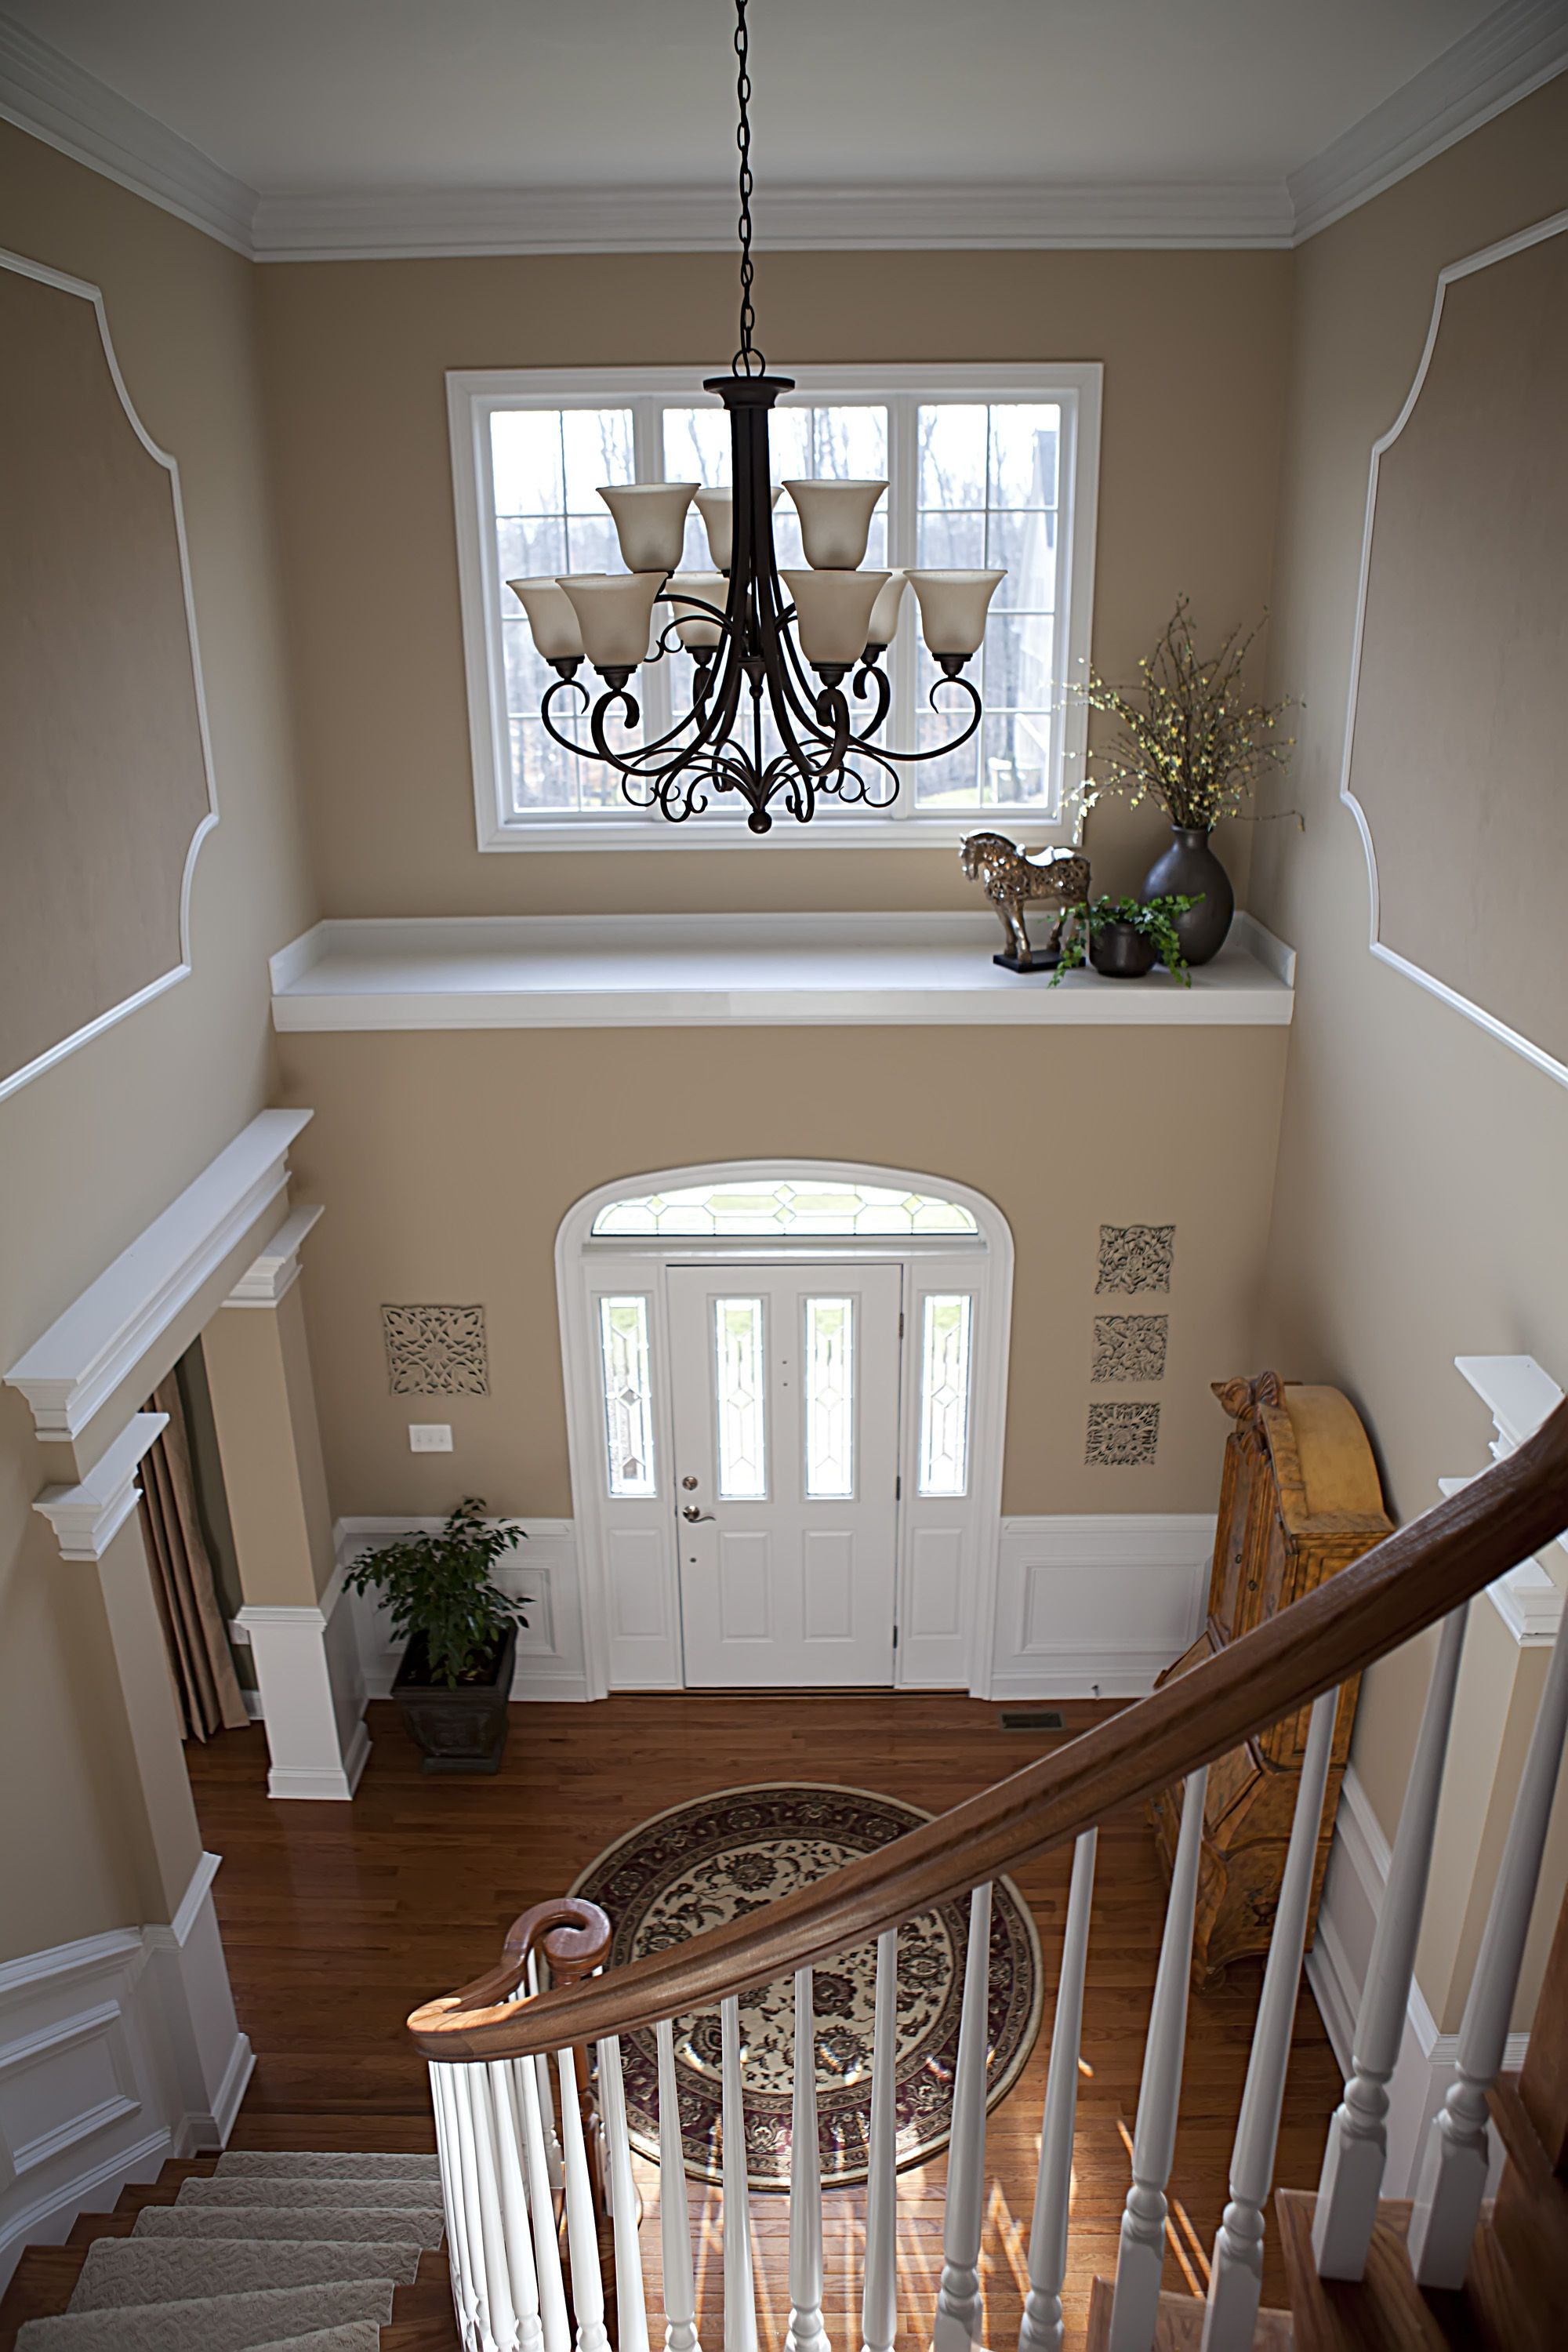 A warm inviting entrance hsm susie 39 s dream house for Foyer paint color decorating ideas